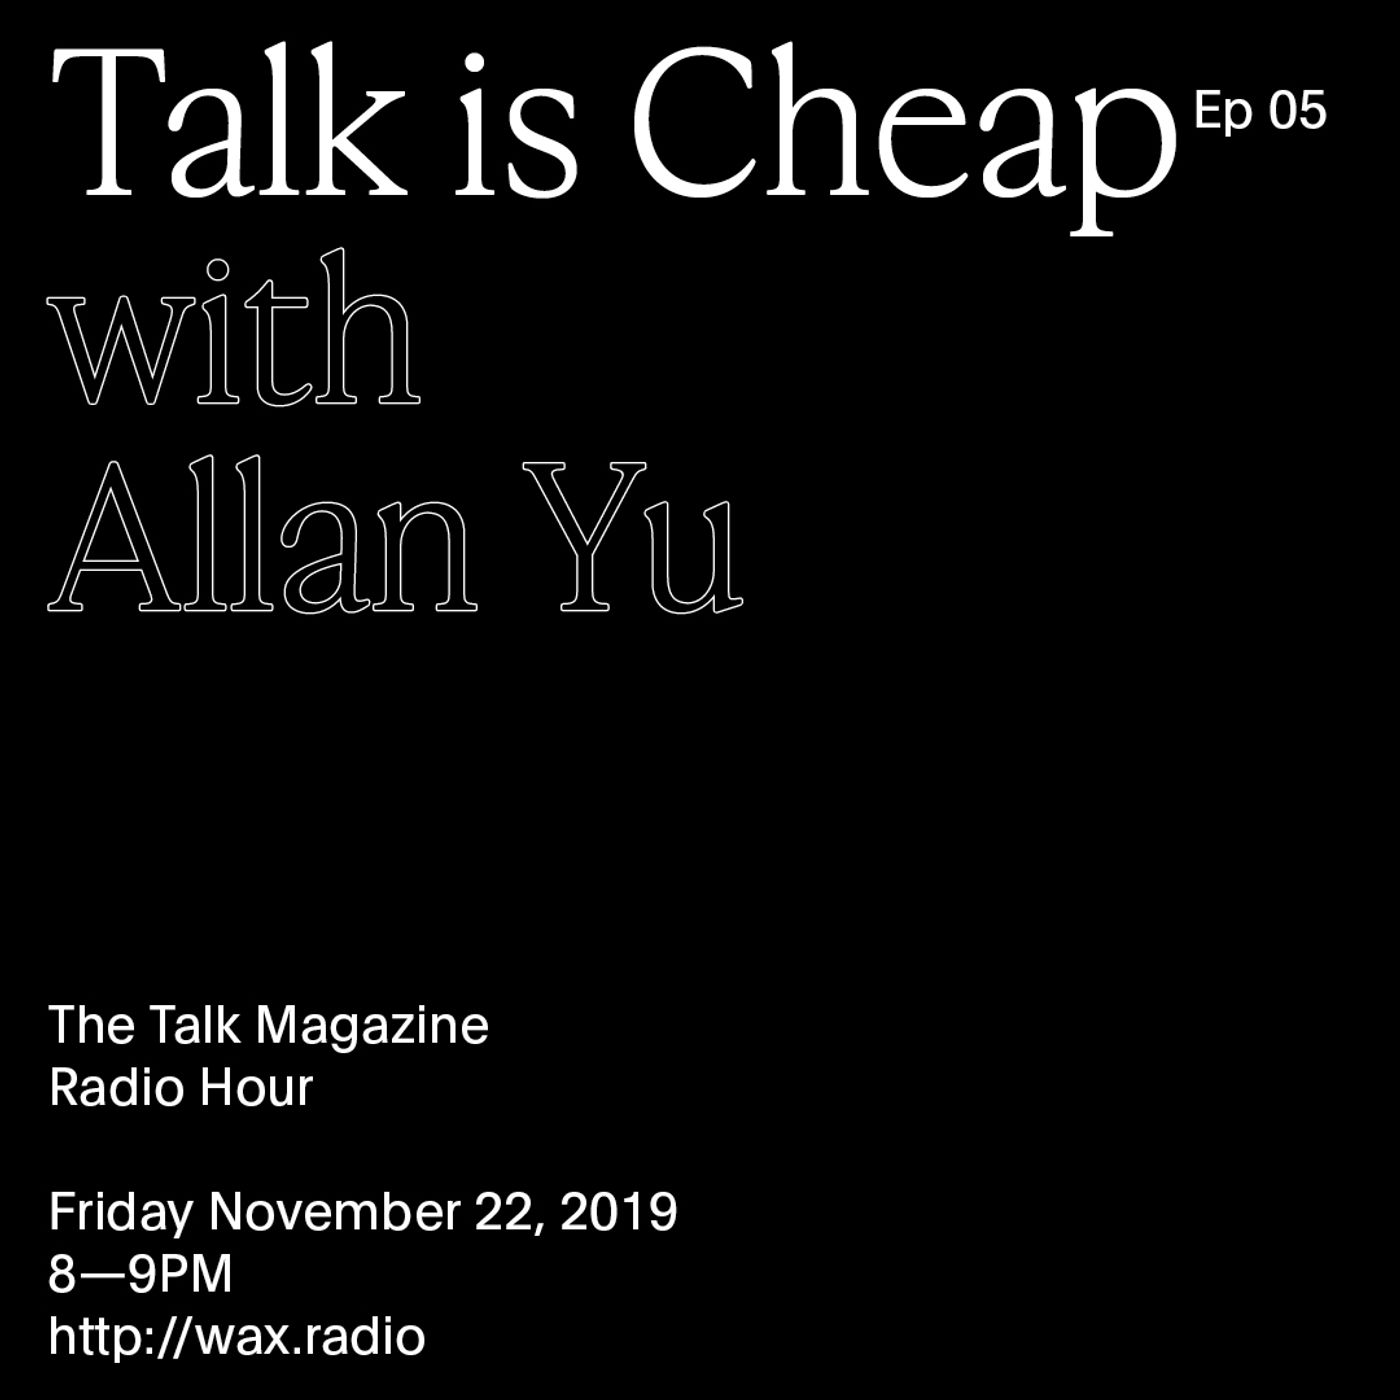 Episode 05 with Allan Yu